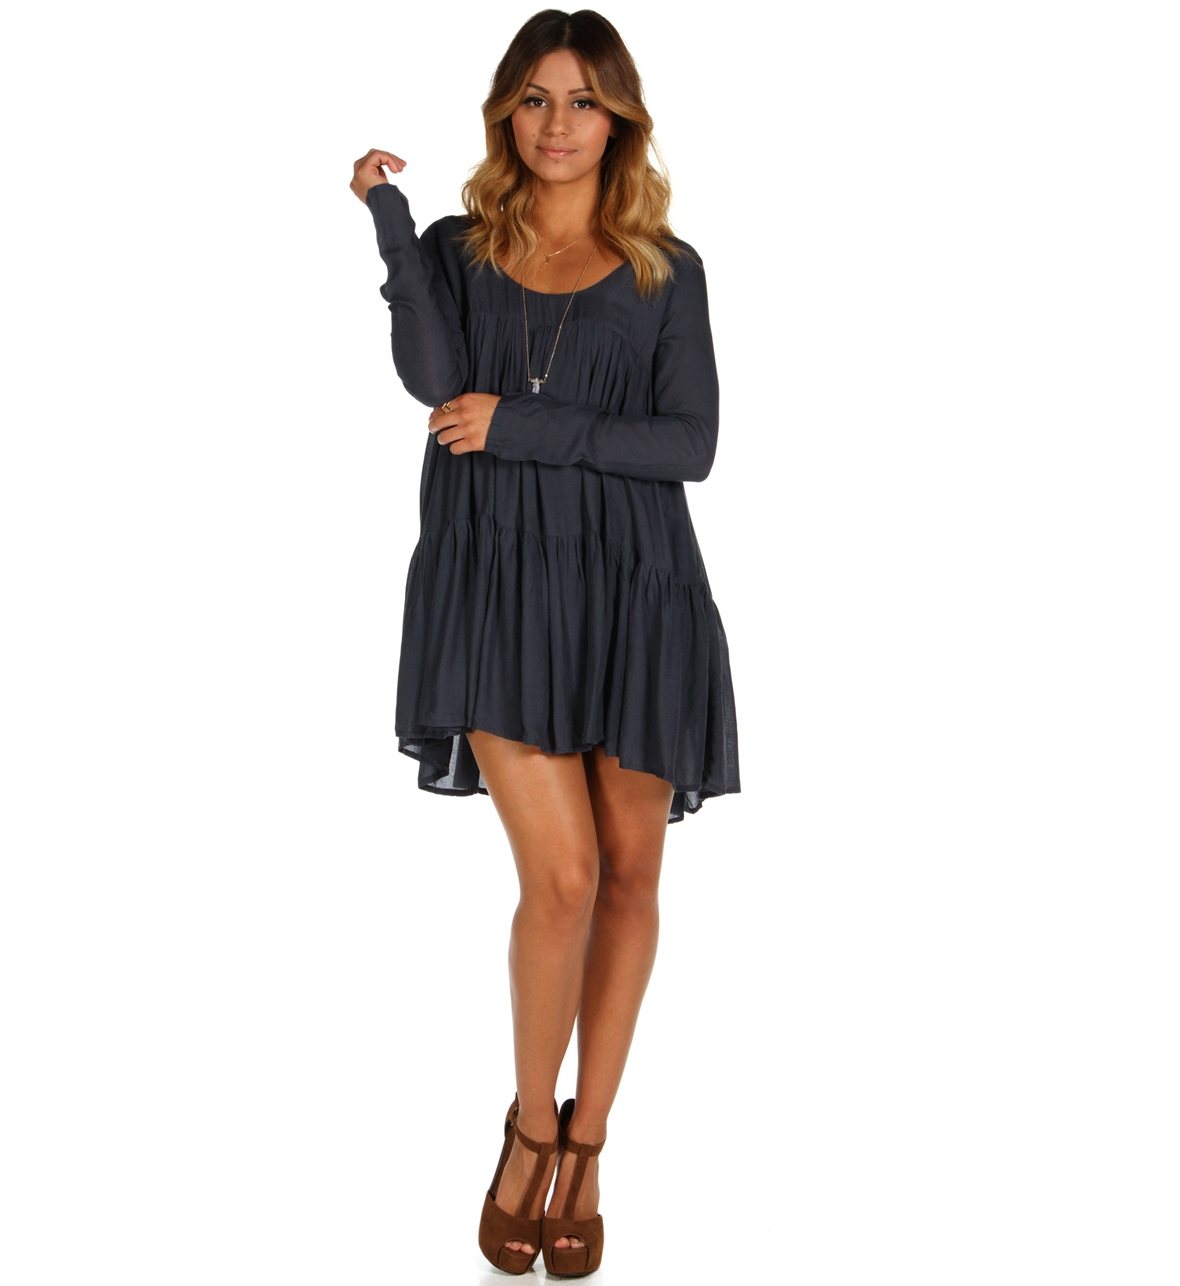 Charcoal Ruffle Swing Tunic